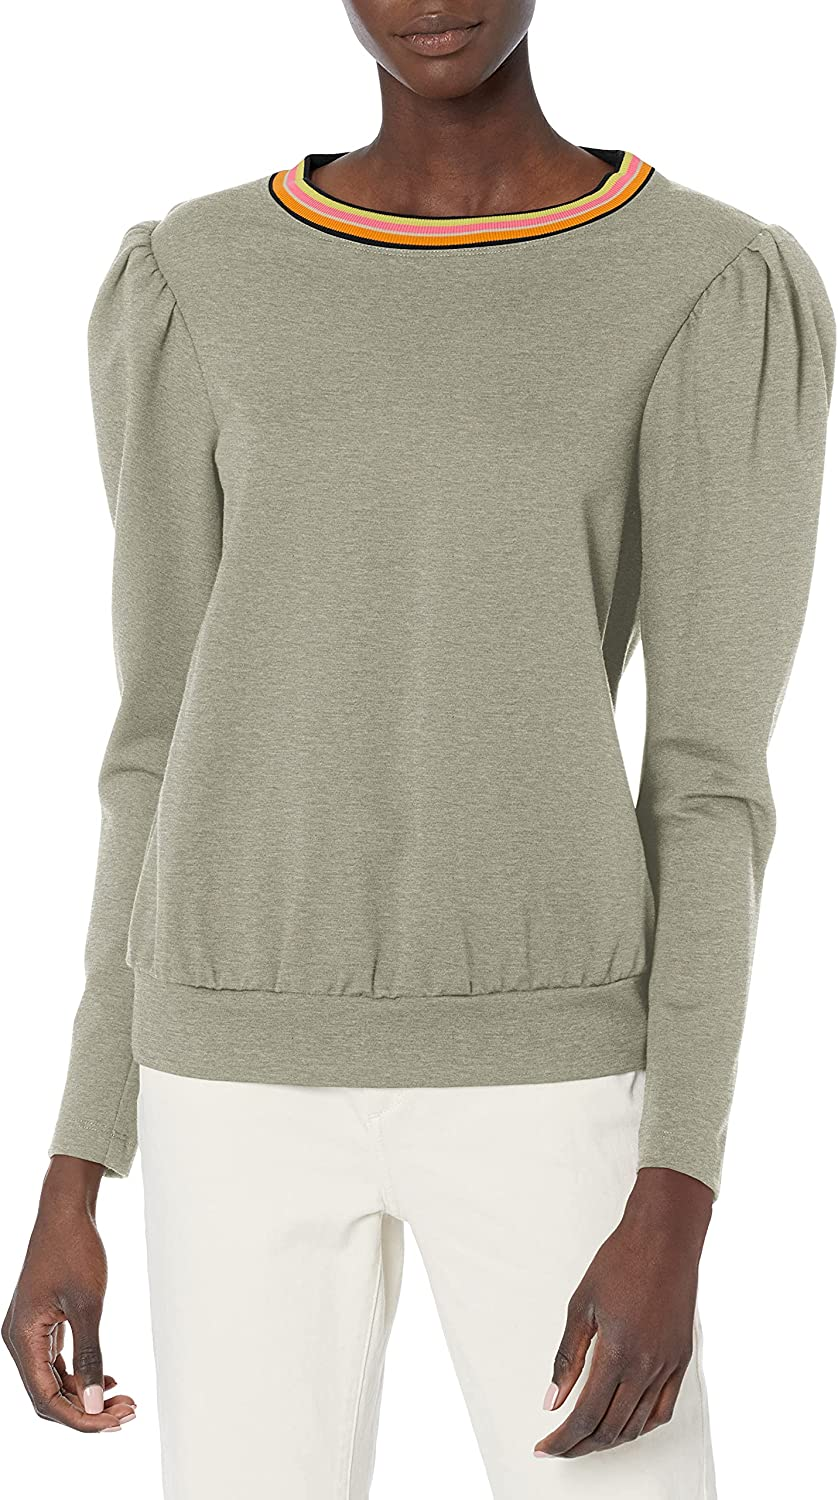 Trina Turk Women's Top Puff Easy-to-use Sleeve Clearance SALE! Limited time!